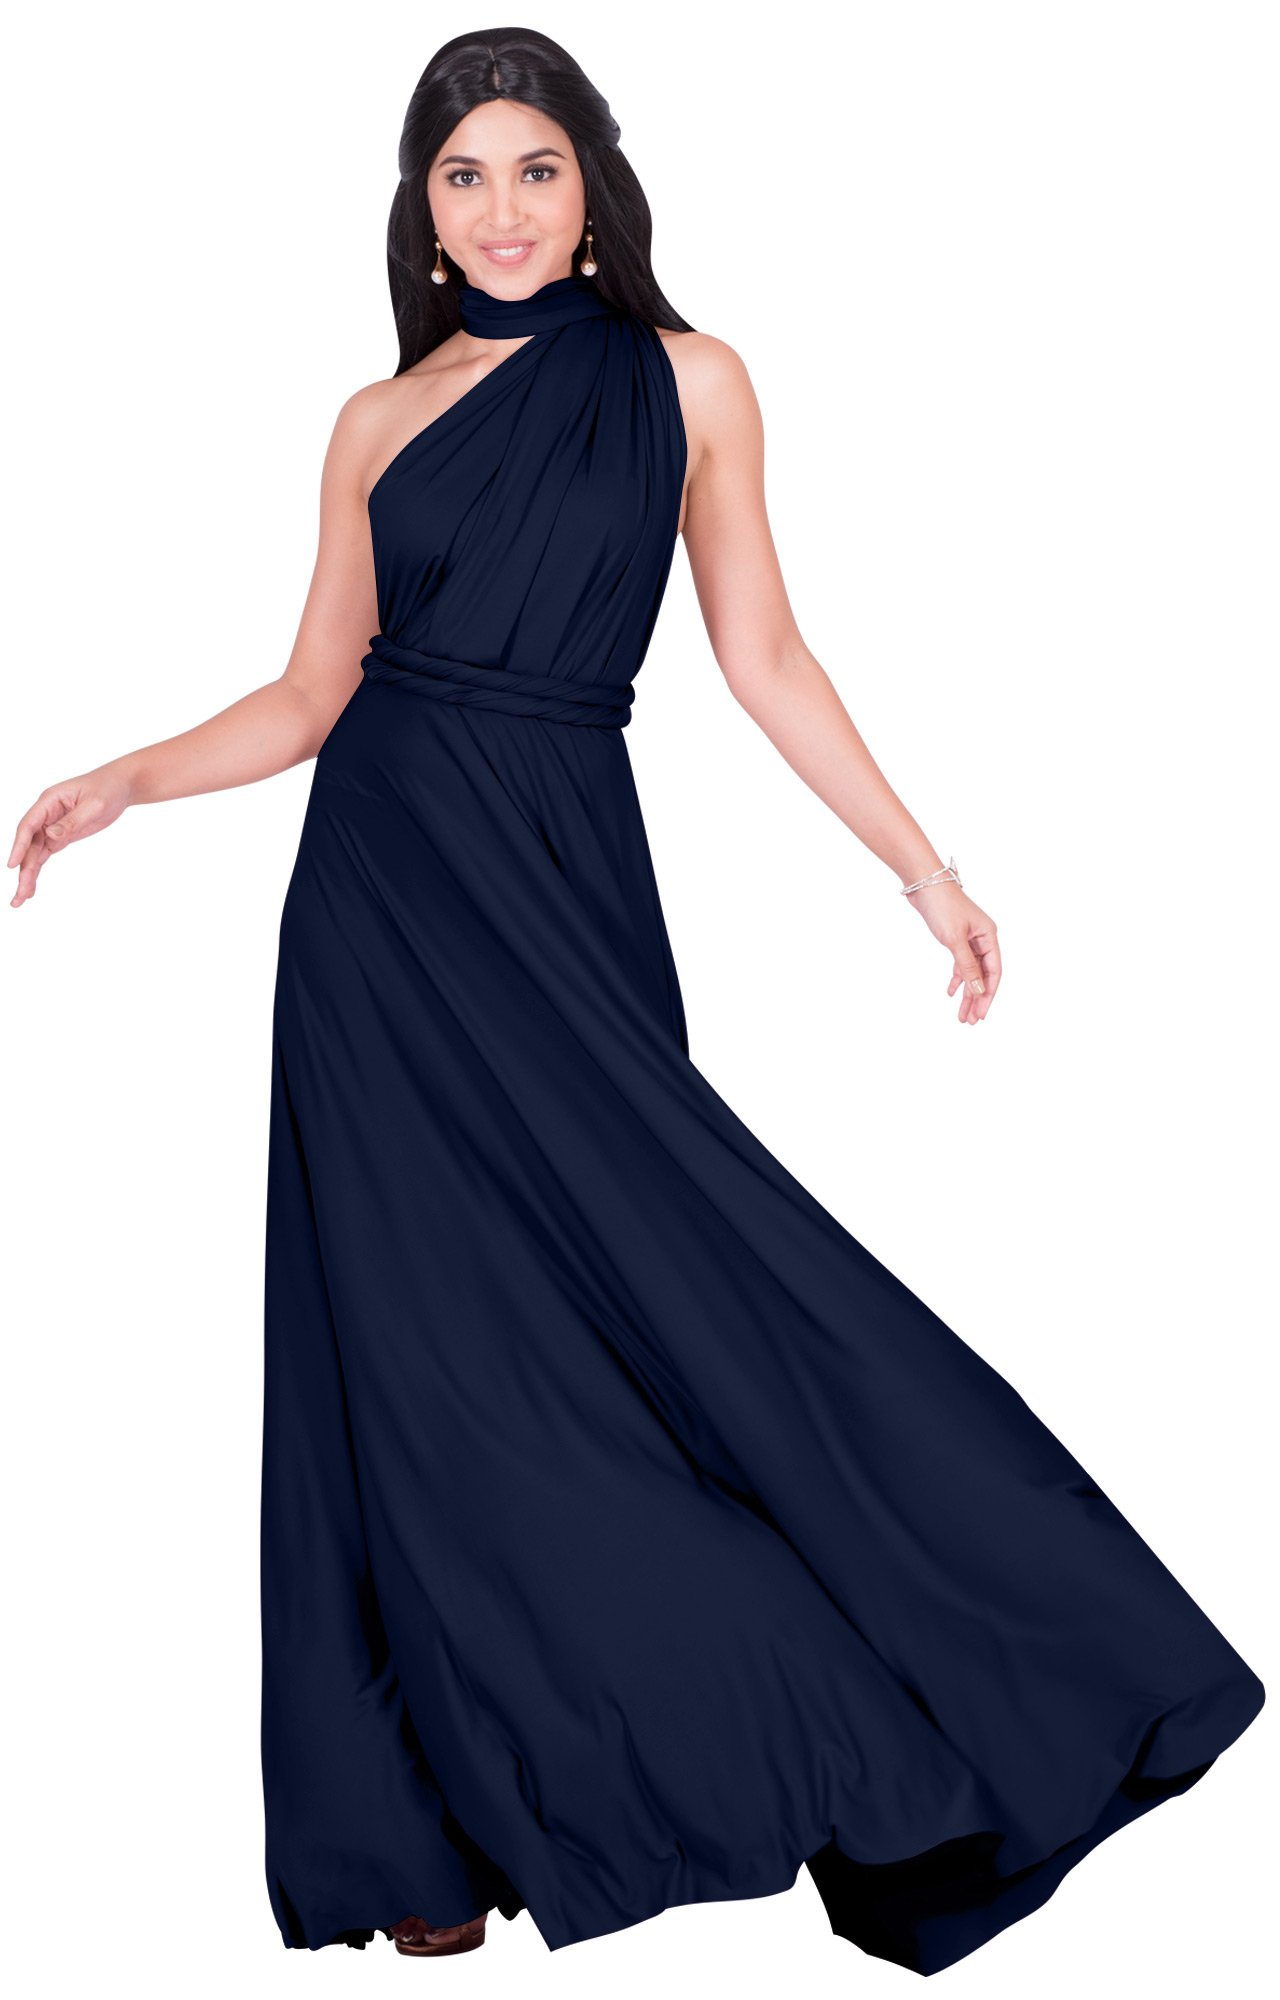 KOH KOH Plus Size Womens Long Bridesmaid Multi-way Wedding Convertible Wrap Infinity Cocktail Sexy Summer Party Formal Prom Transformer Gown Gowns Maxi Dress Dresses, Navy Blue XL 14-16